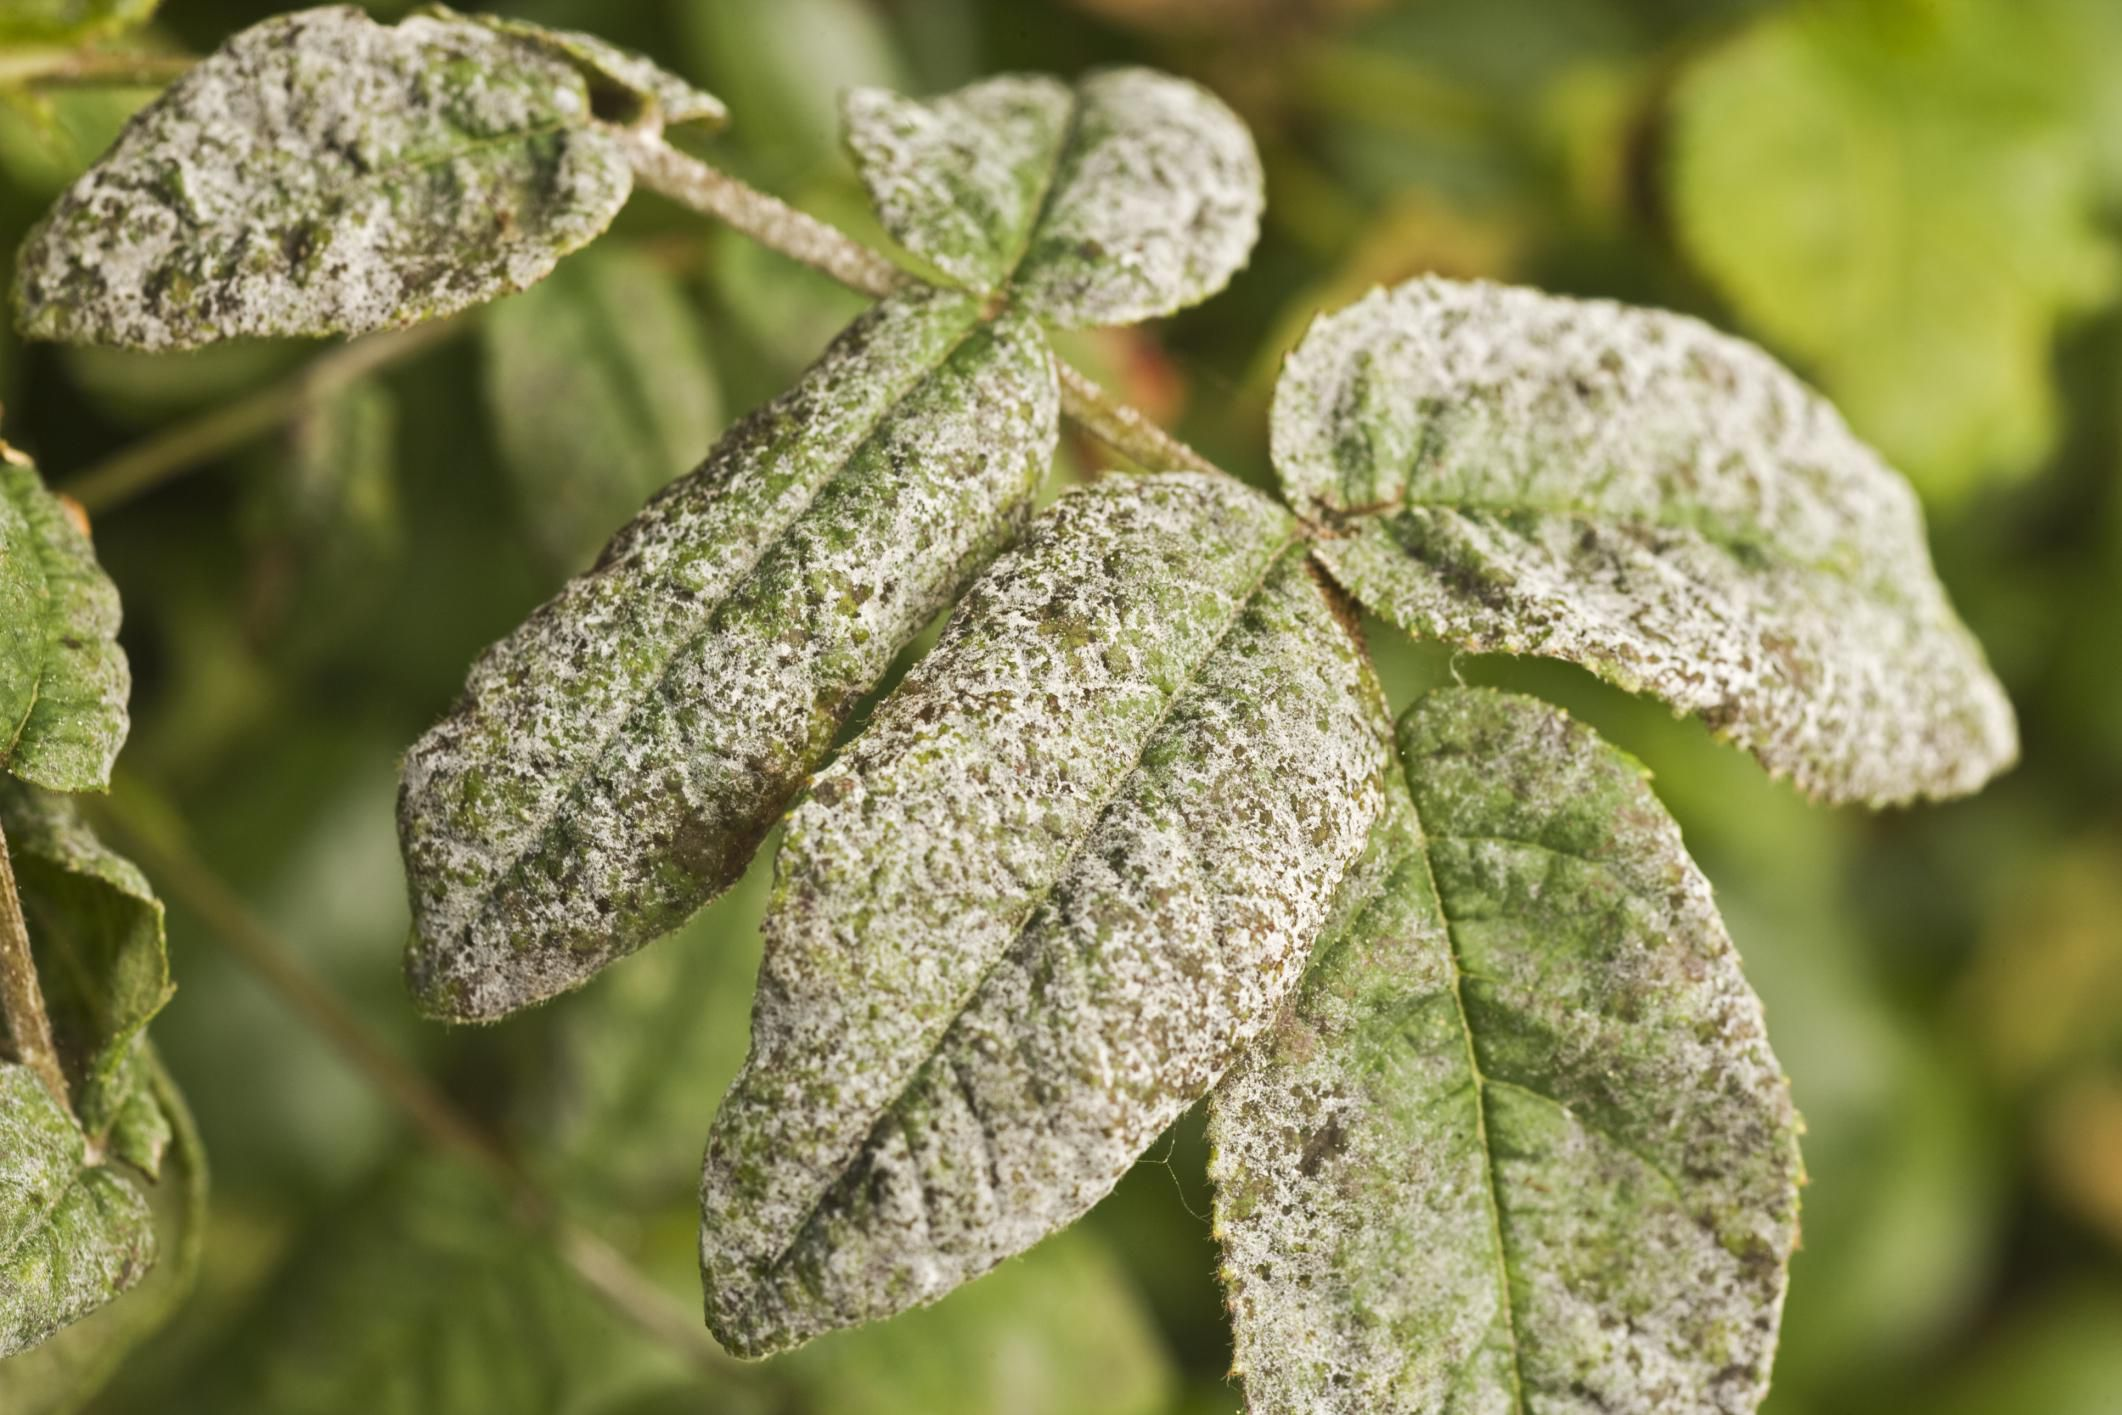 How To Use Milk Spray To Control Powdery Mildew